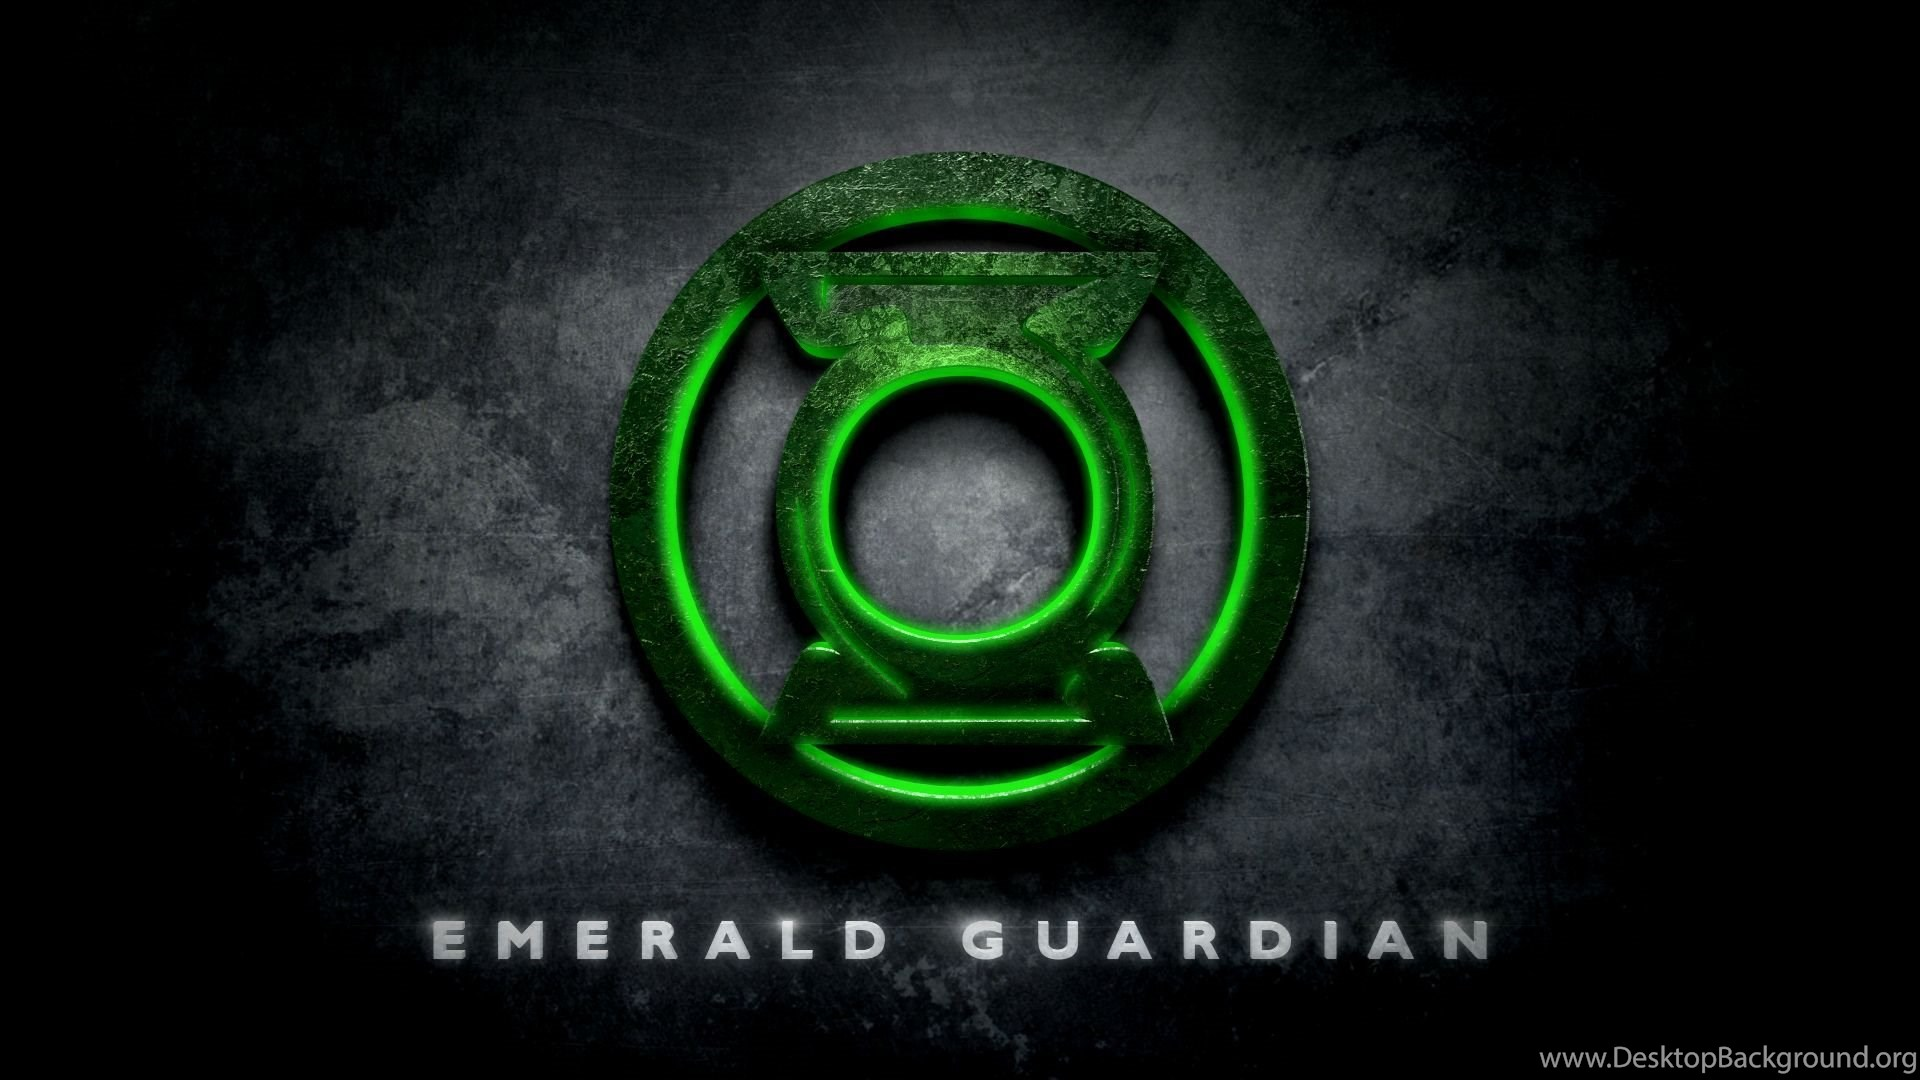 the gallery for > green lantern movie logo desktop background